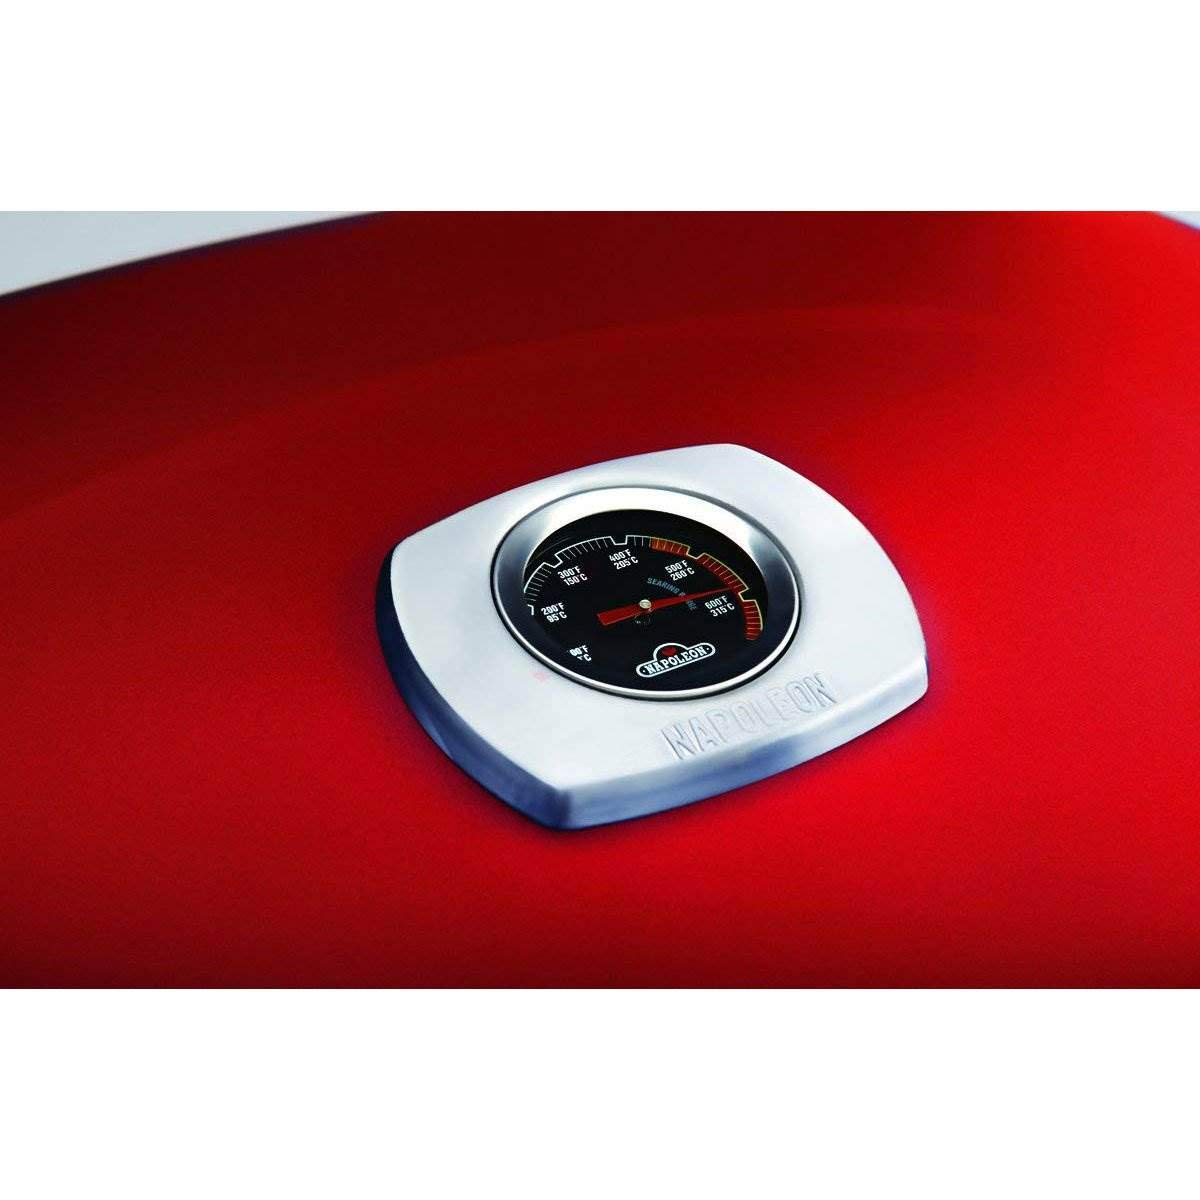 Napoleon Grills TQ285-RD-A Travelq 285 Portable Gas Grill, Red by Napoleon